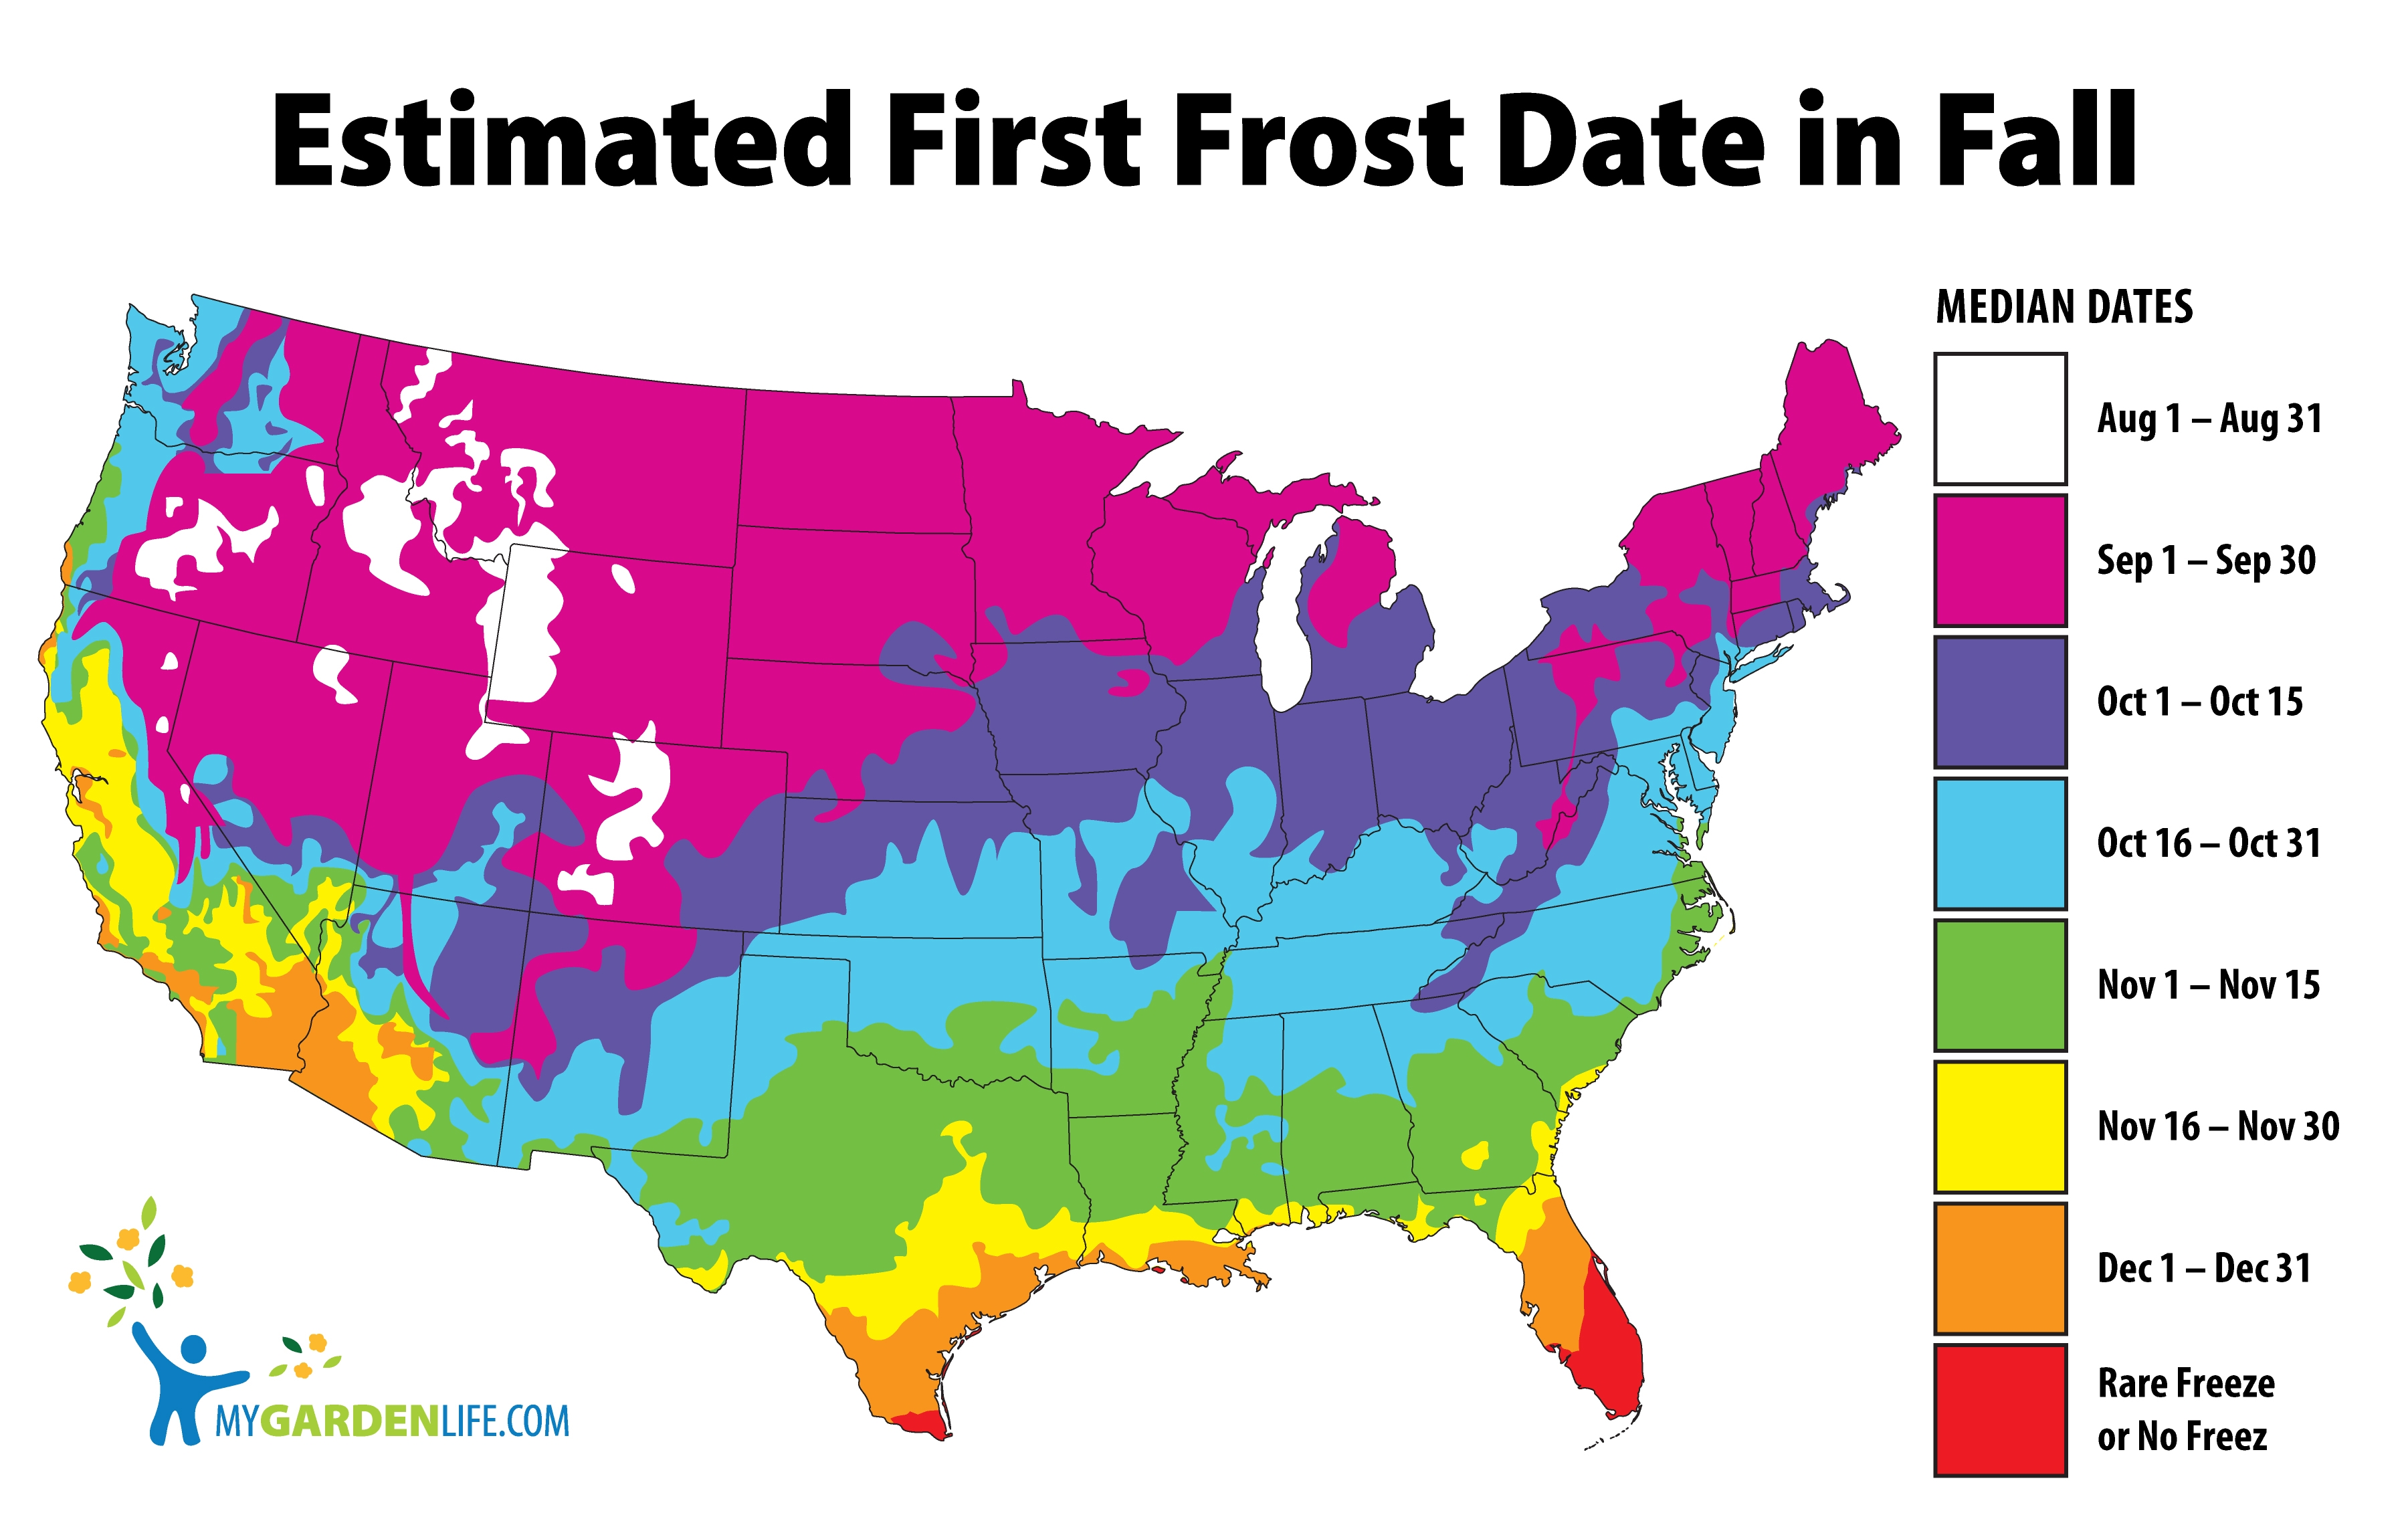 Estimated First Frost Date in Fall